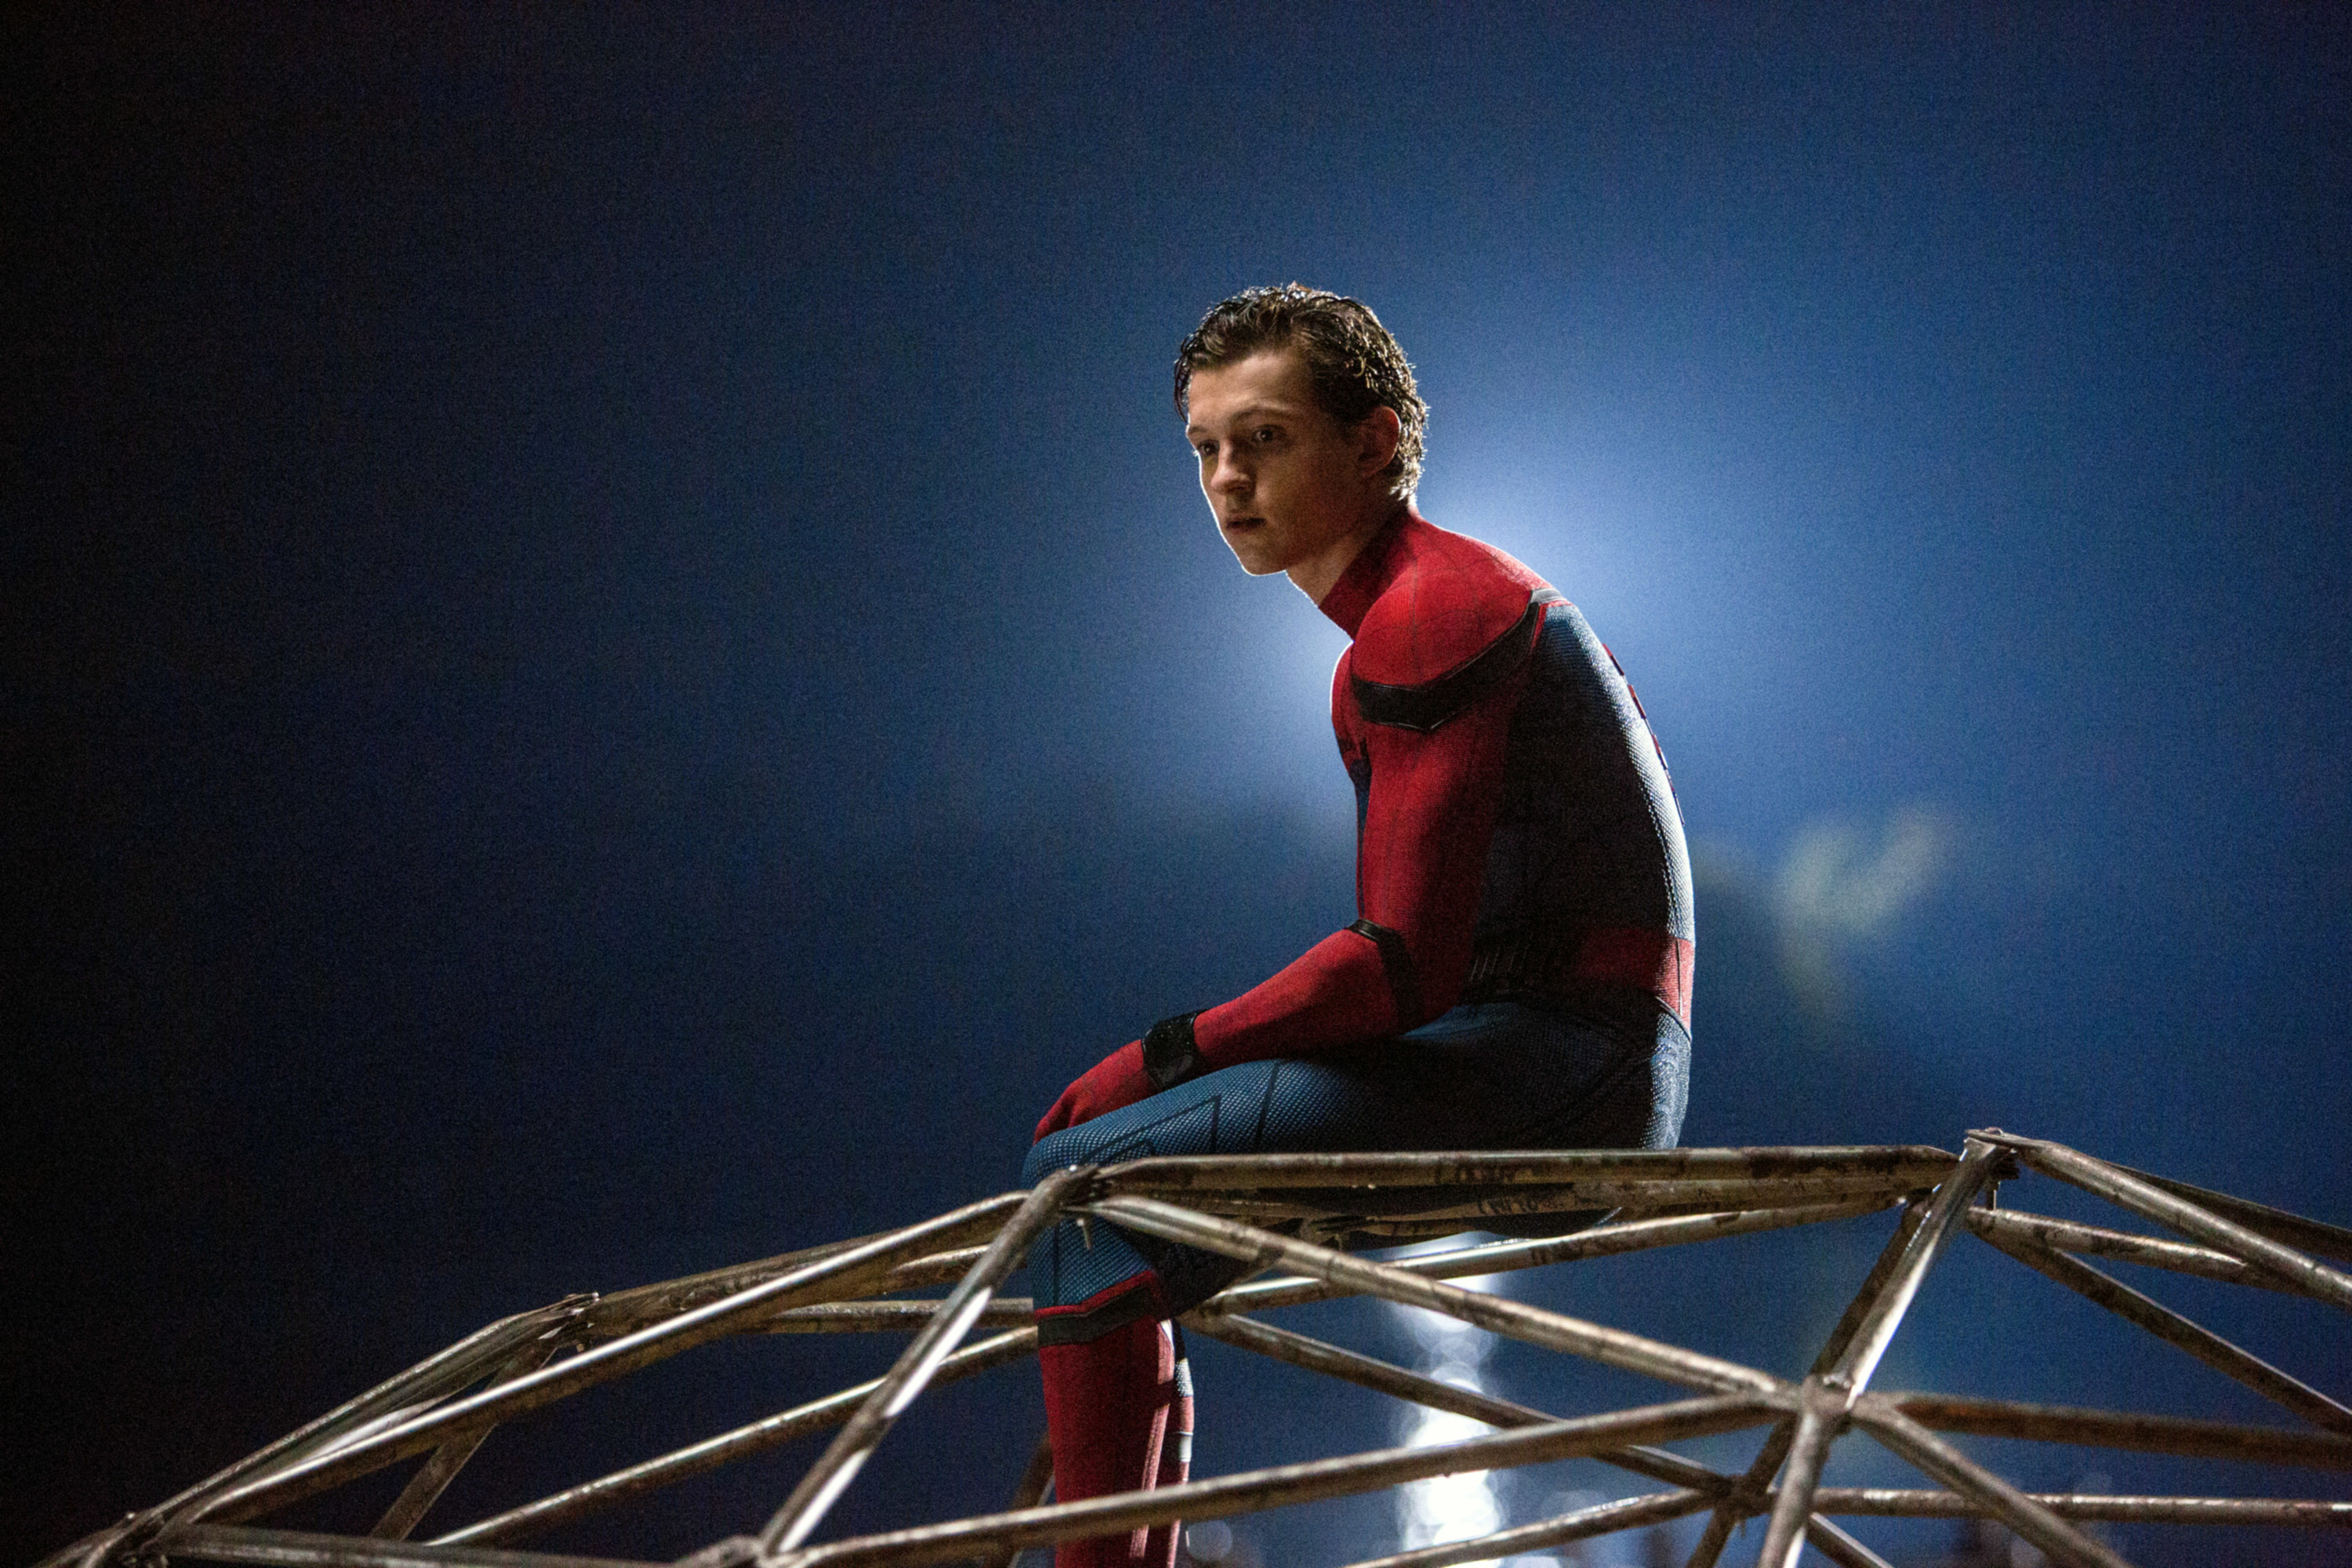 Spider-Man sitting unmasked on top of jungle gym geo dome